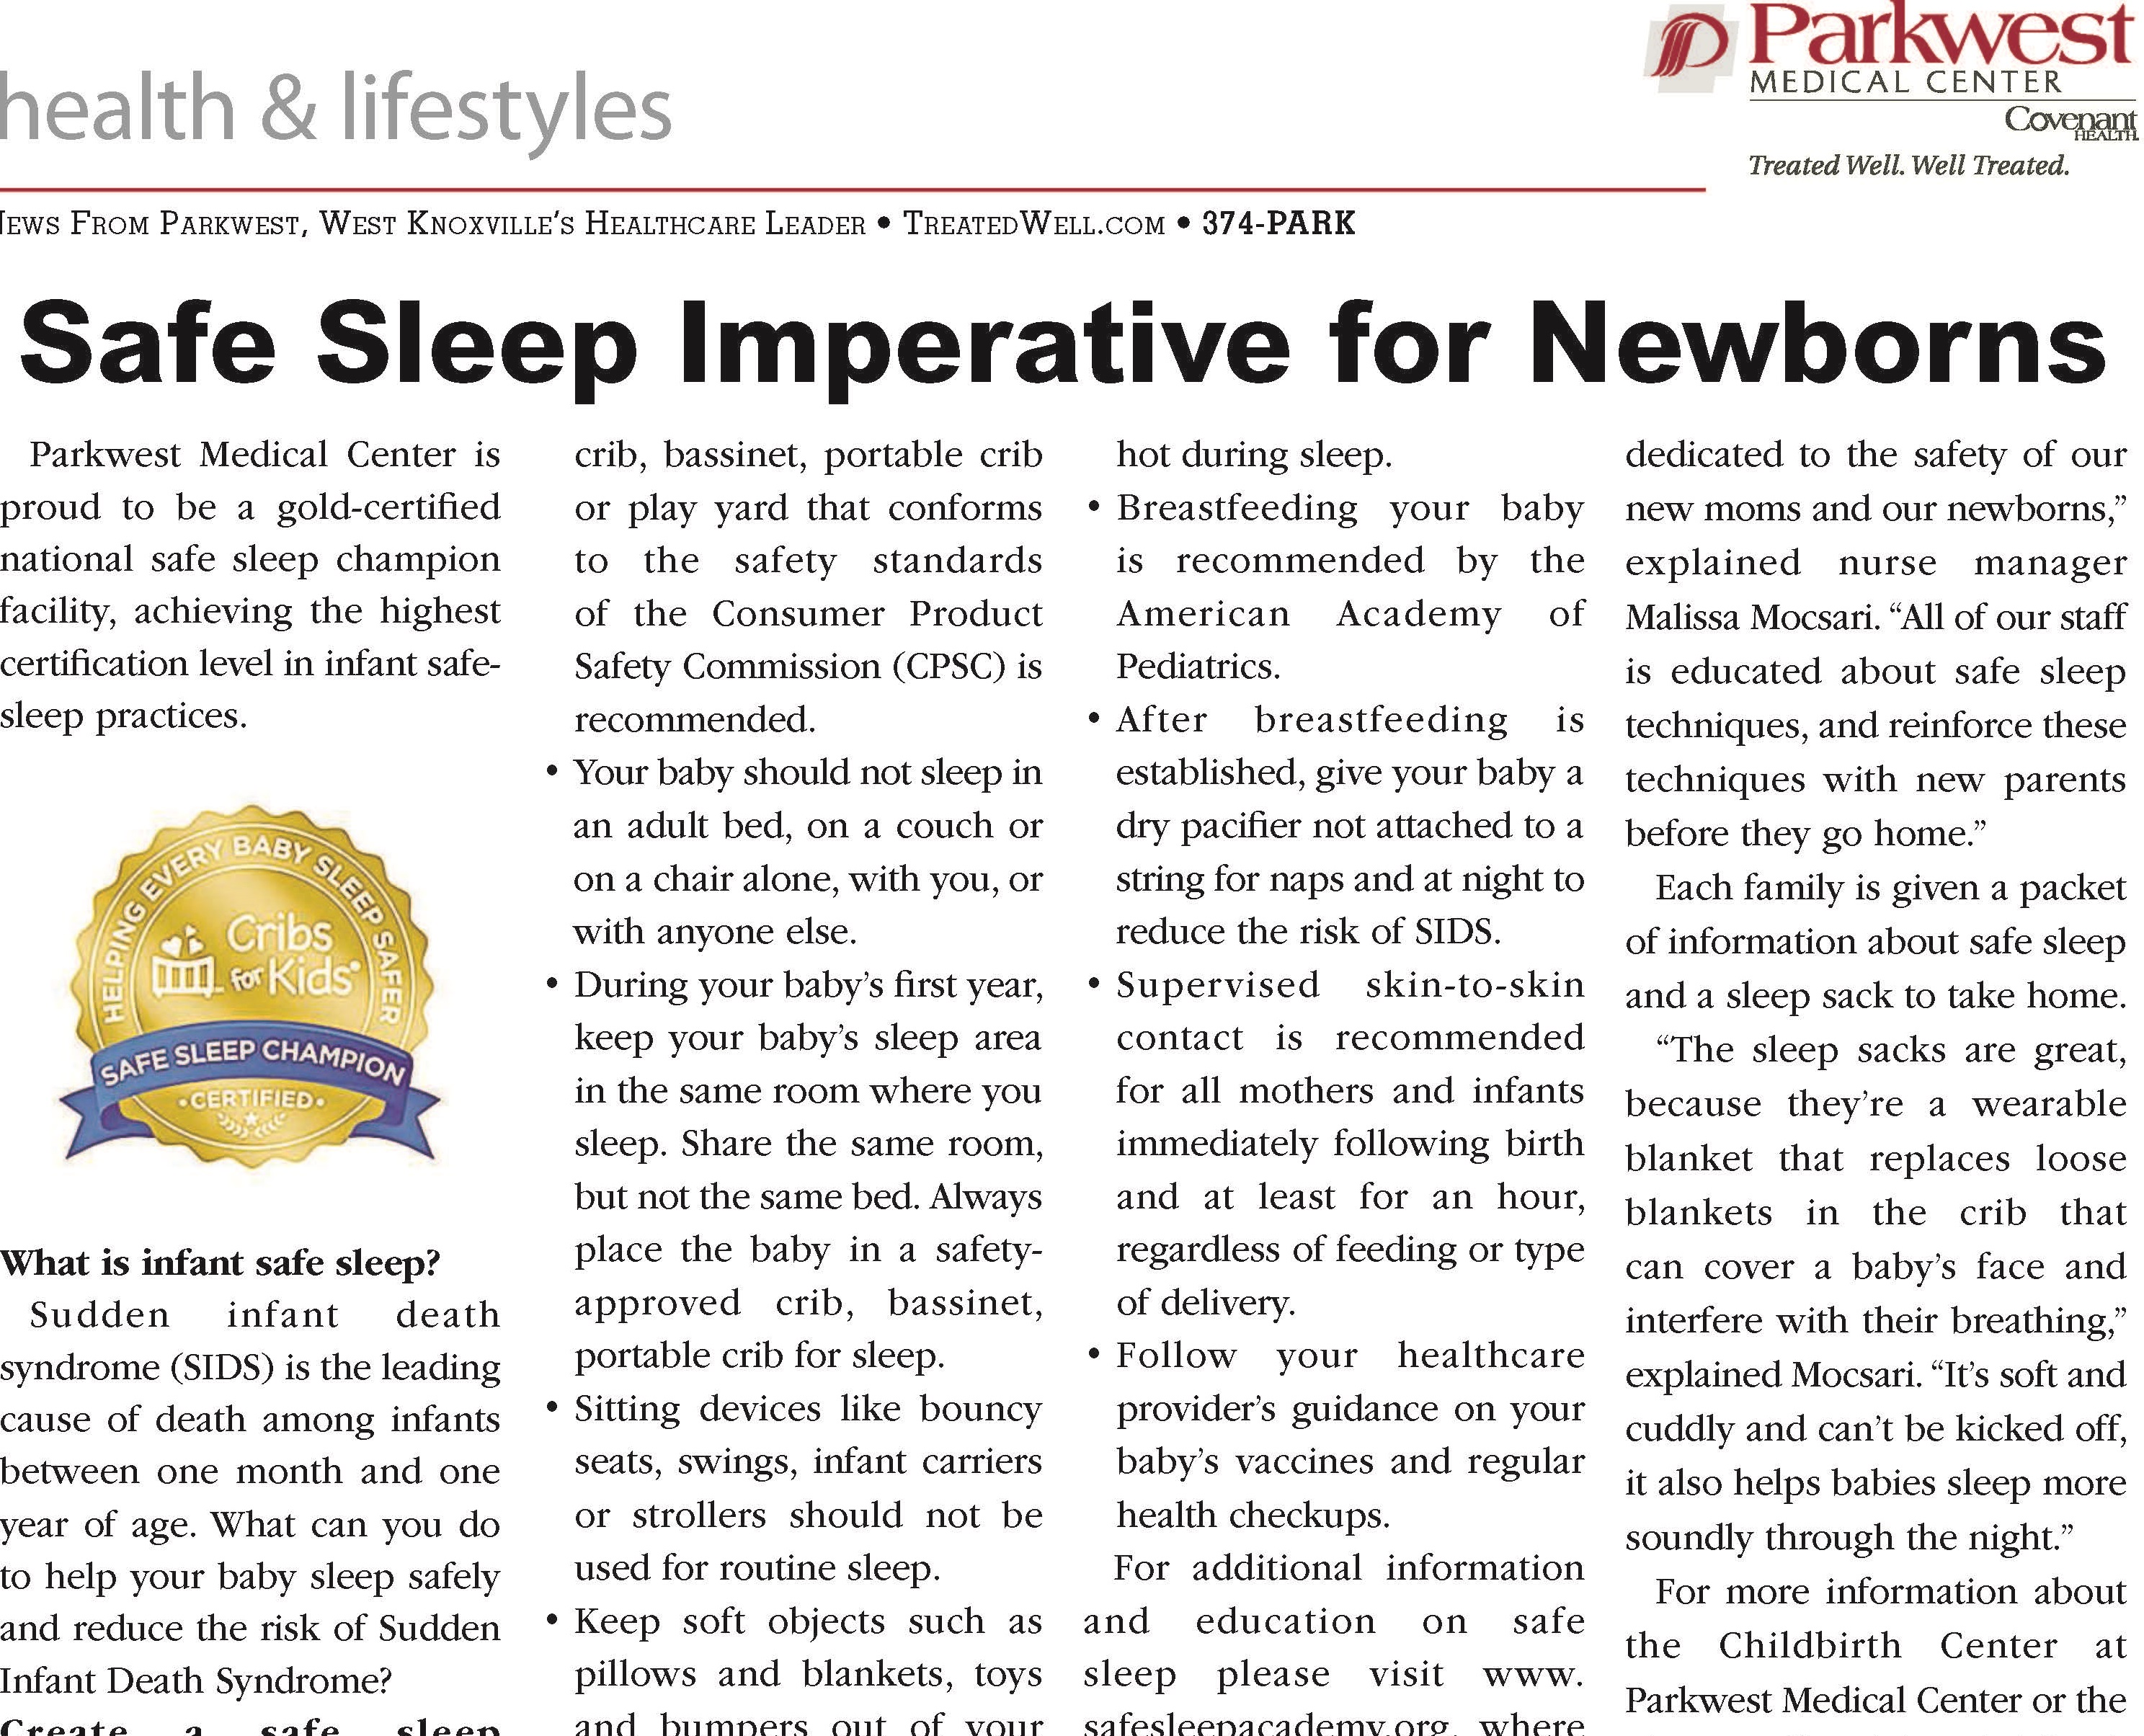 Safe Sleep Imperative for Newborns